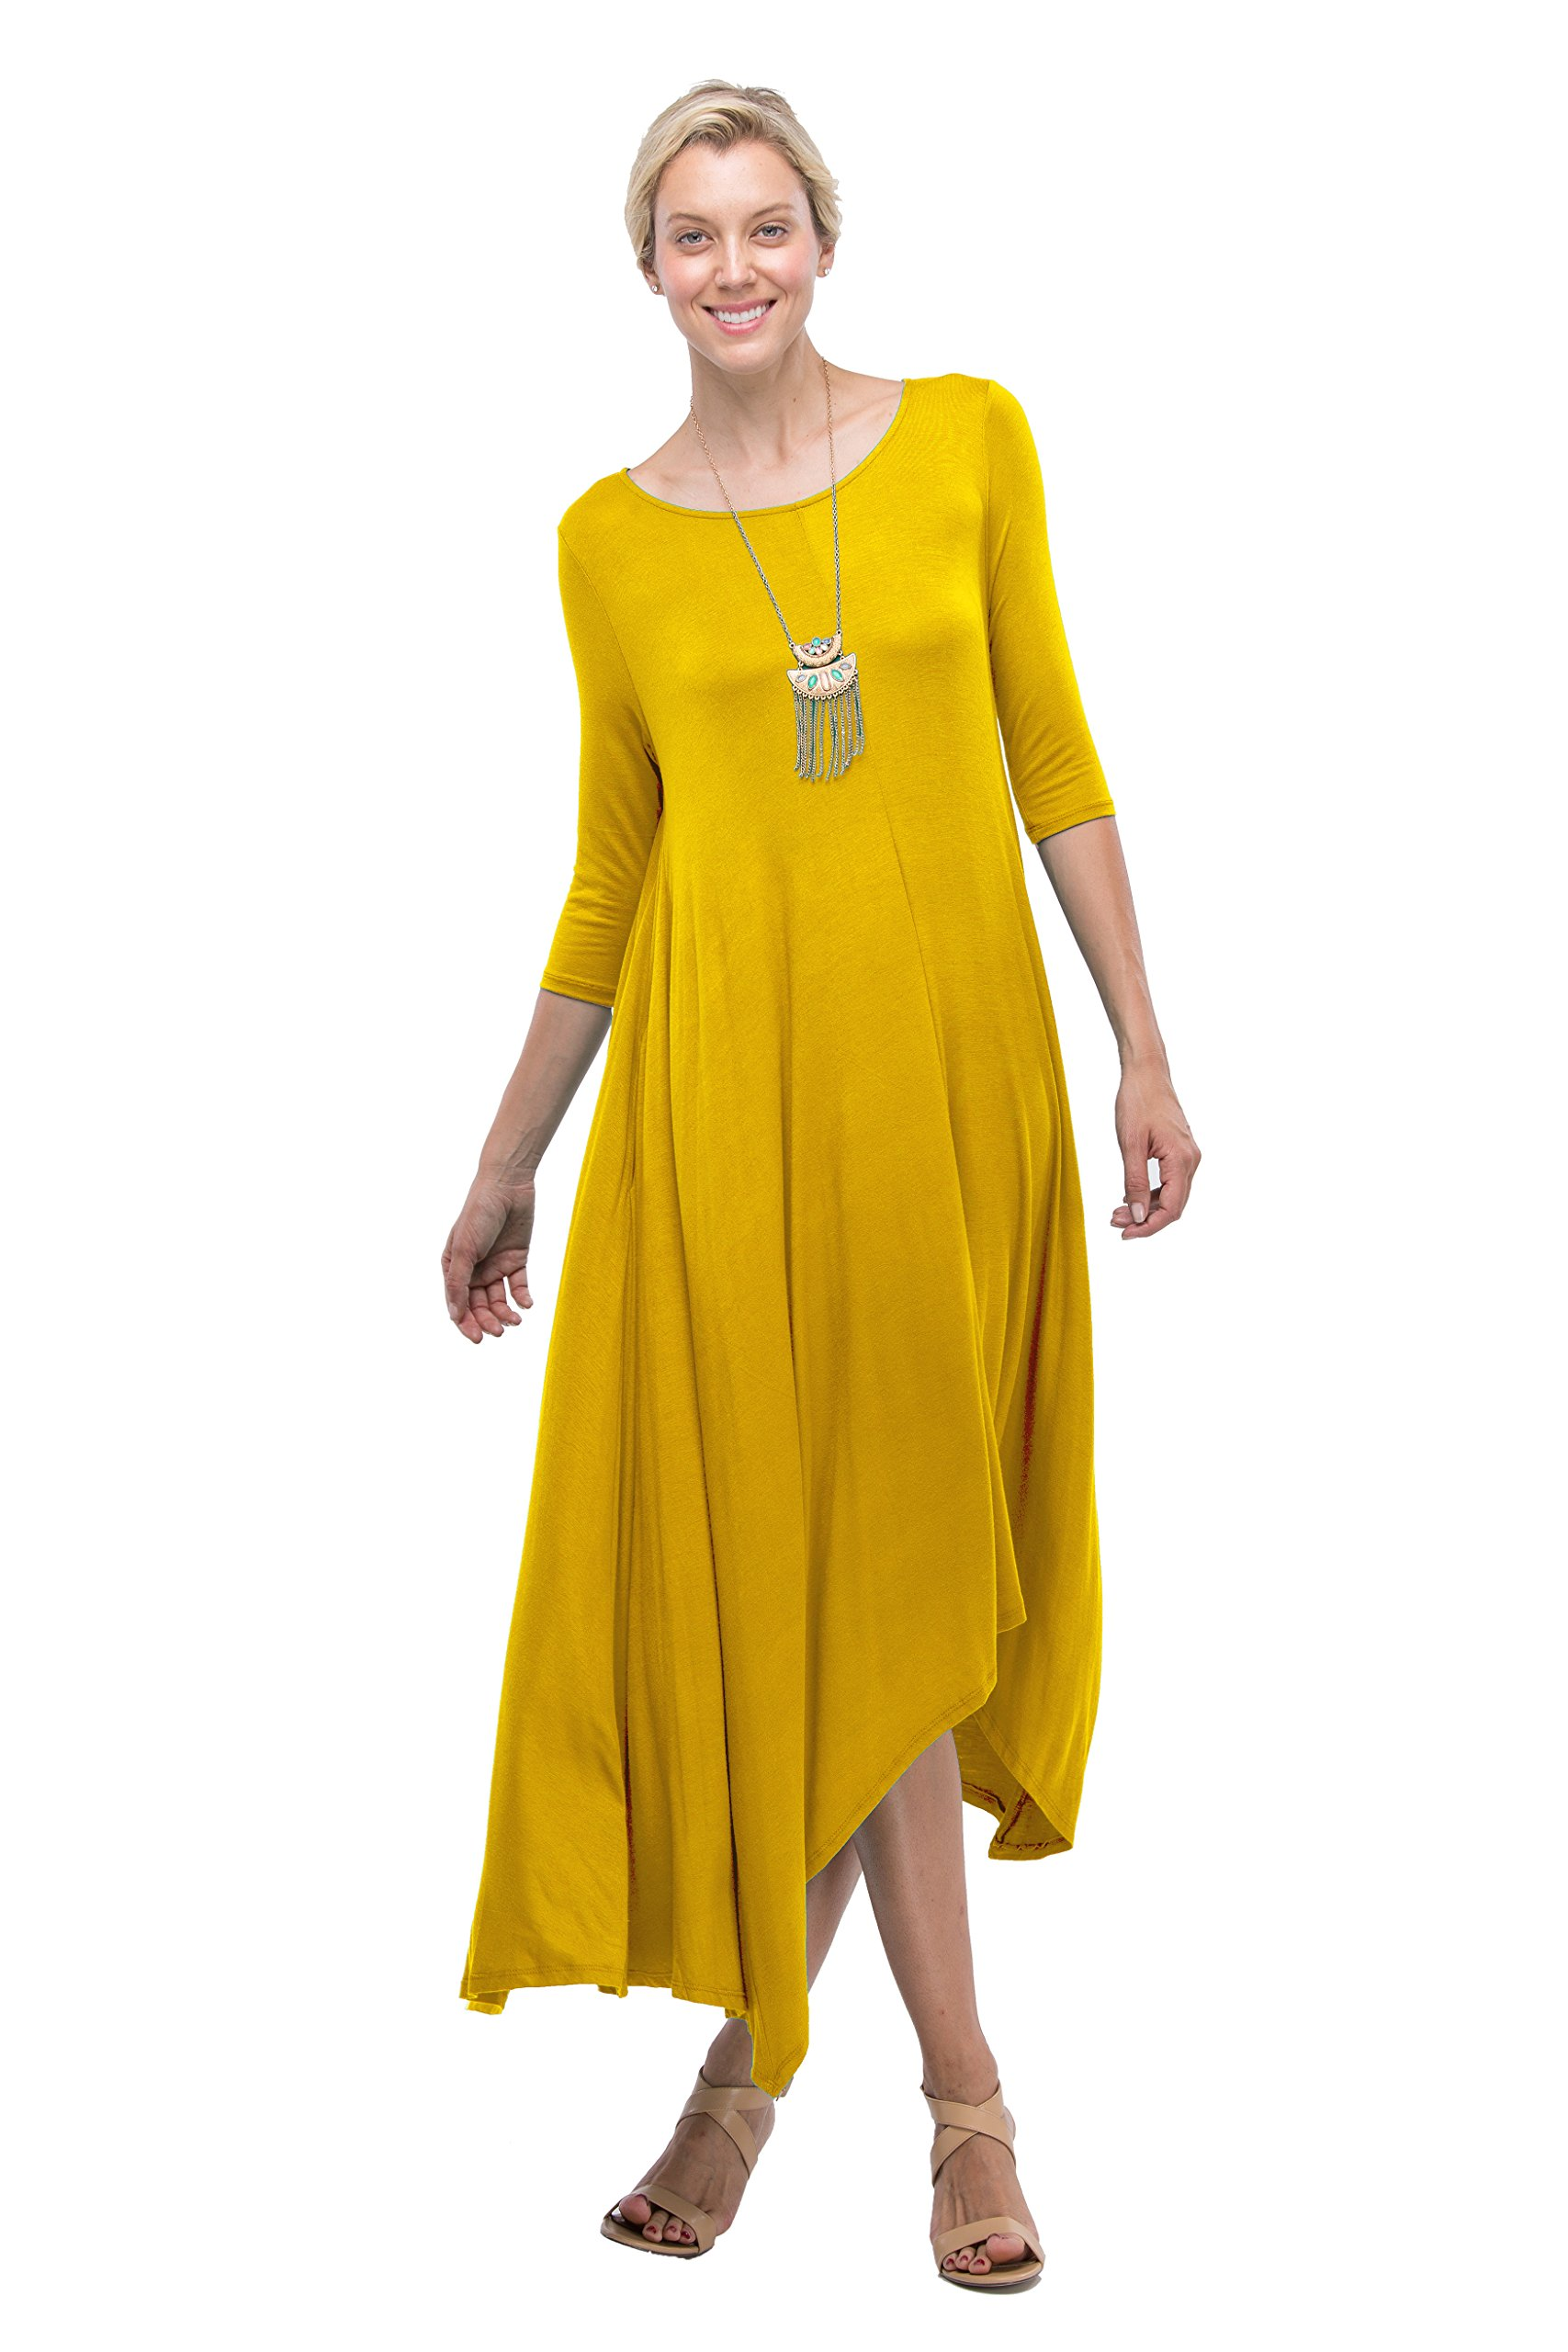 Love In D6190C 3/4 Long Sleeve Round Neck High Low Flared Maxi Dress W/Pocket Mustard L